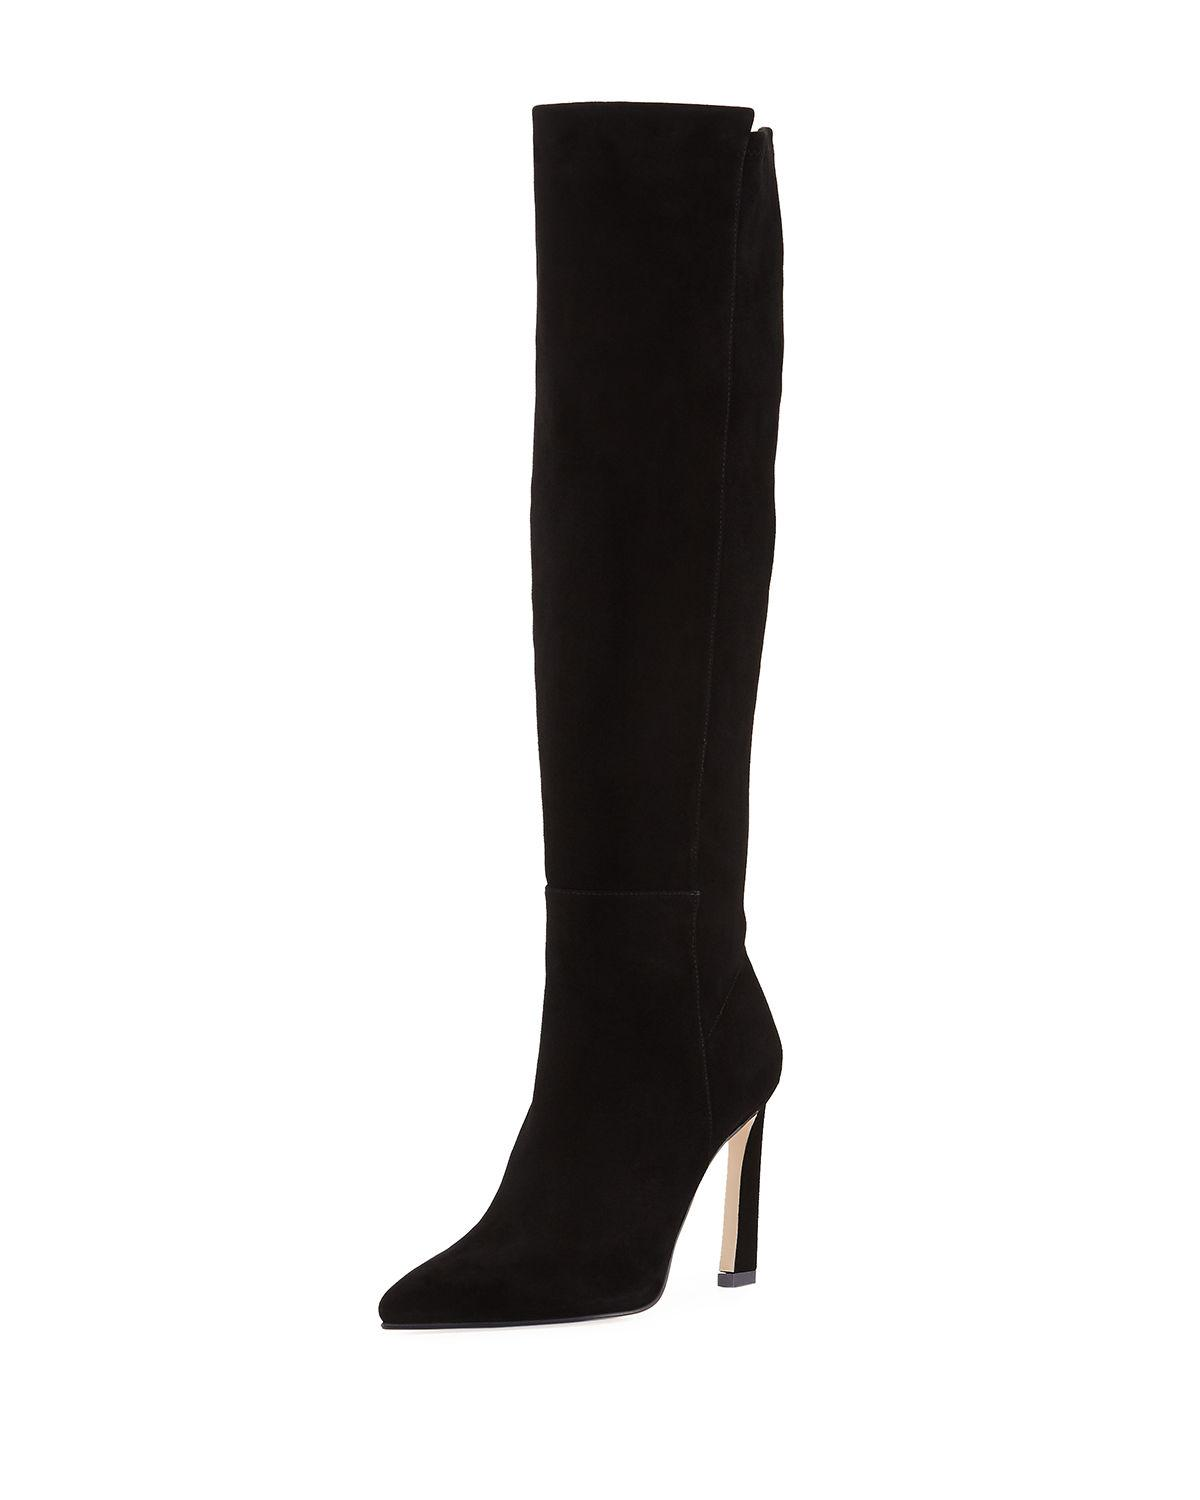 543a436a66e Stuart Weitzman Women s Charlie Pointed-Toe Knee-High Suede High-Heel Boots  In